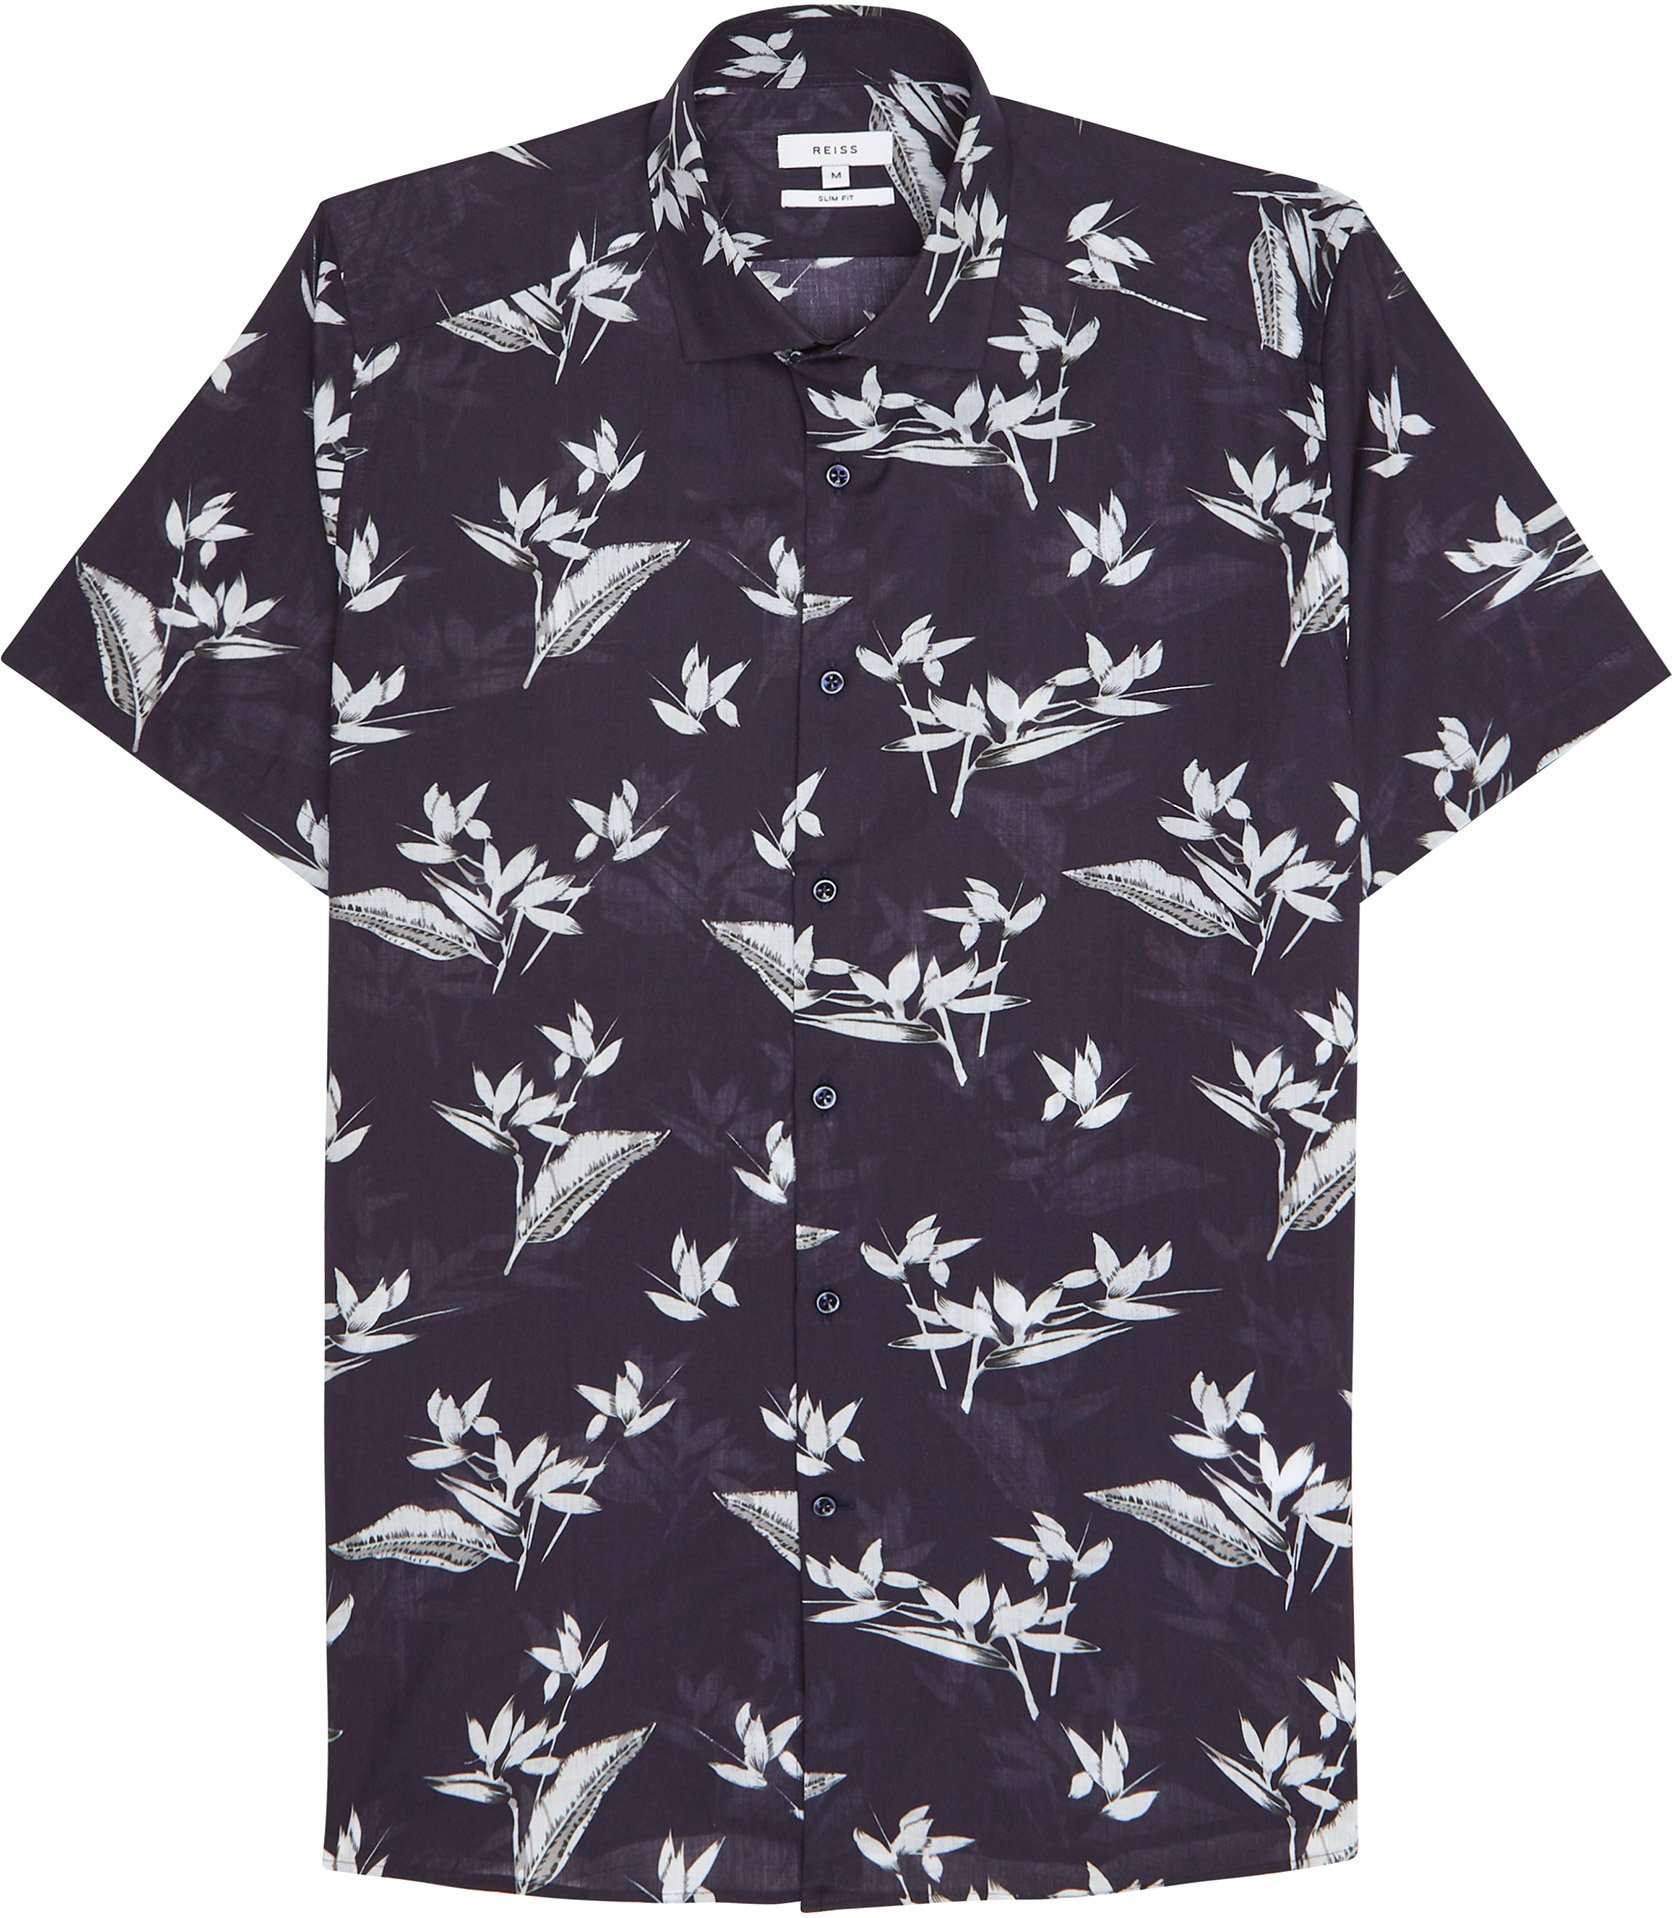 Reiss Floral Shirt